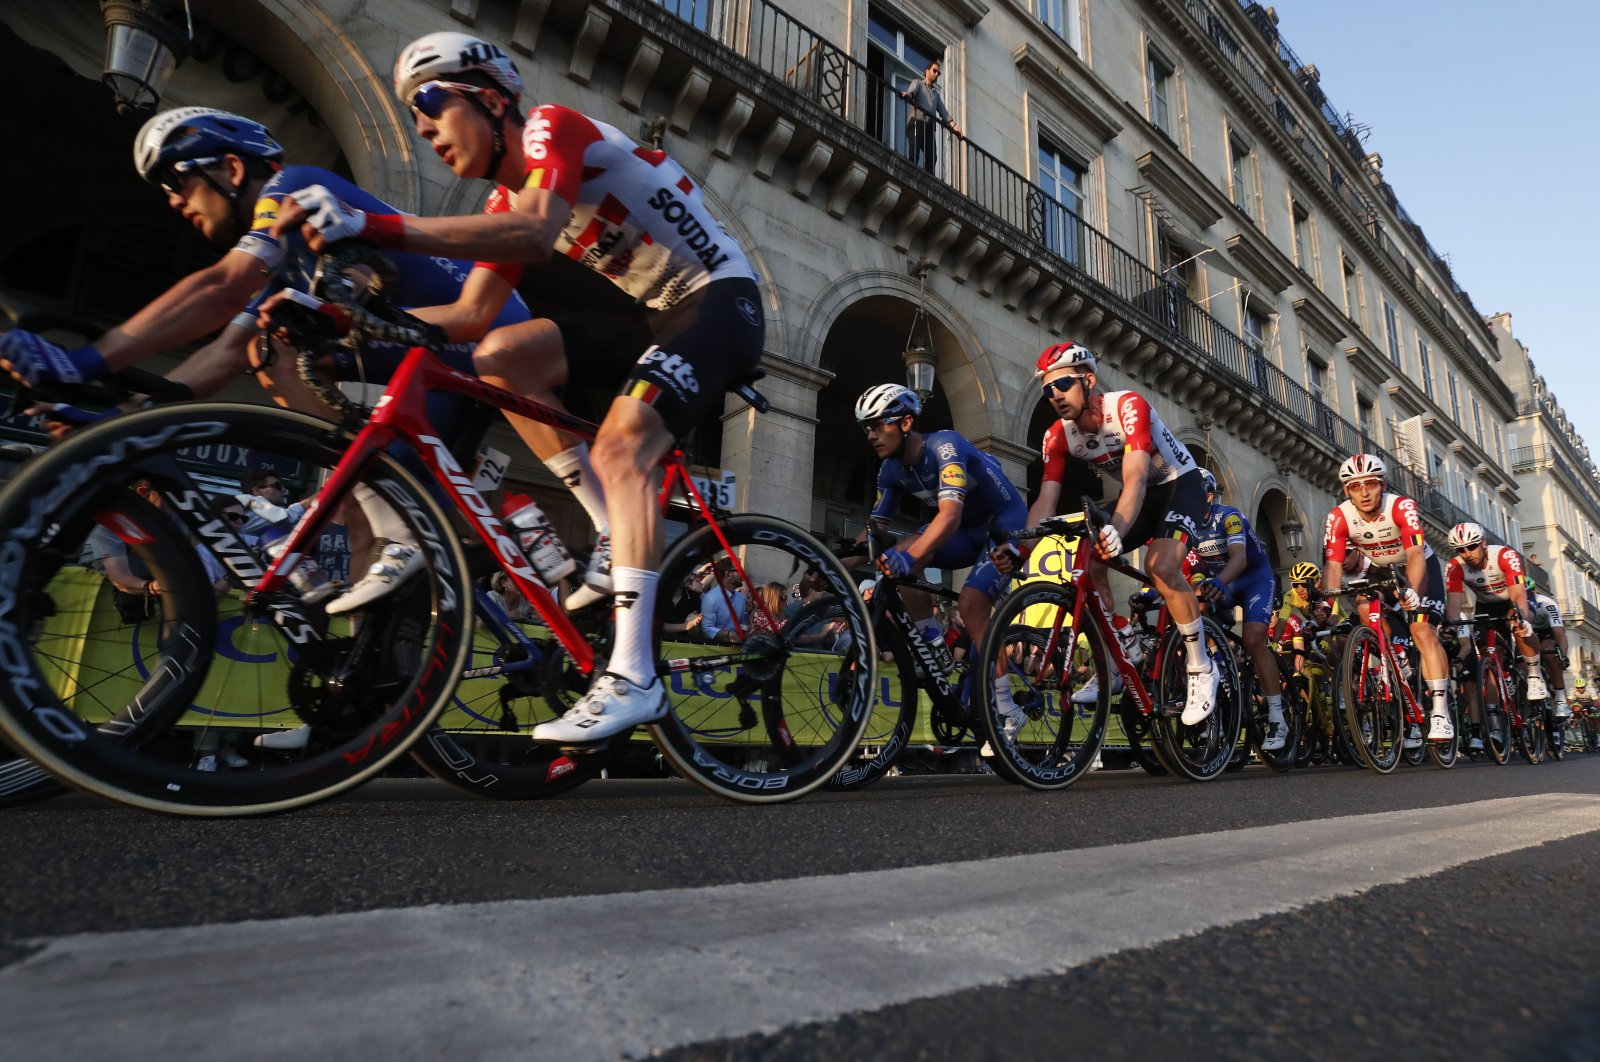 The pack cycles through the streets of Paris during the 21st stage of the Tour de France cycling race in Paris, France, July 28, 2019. (AP Photo)